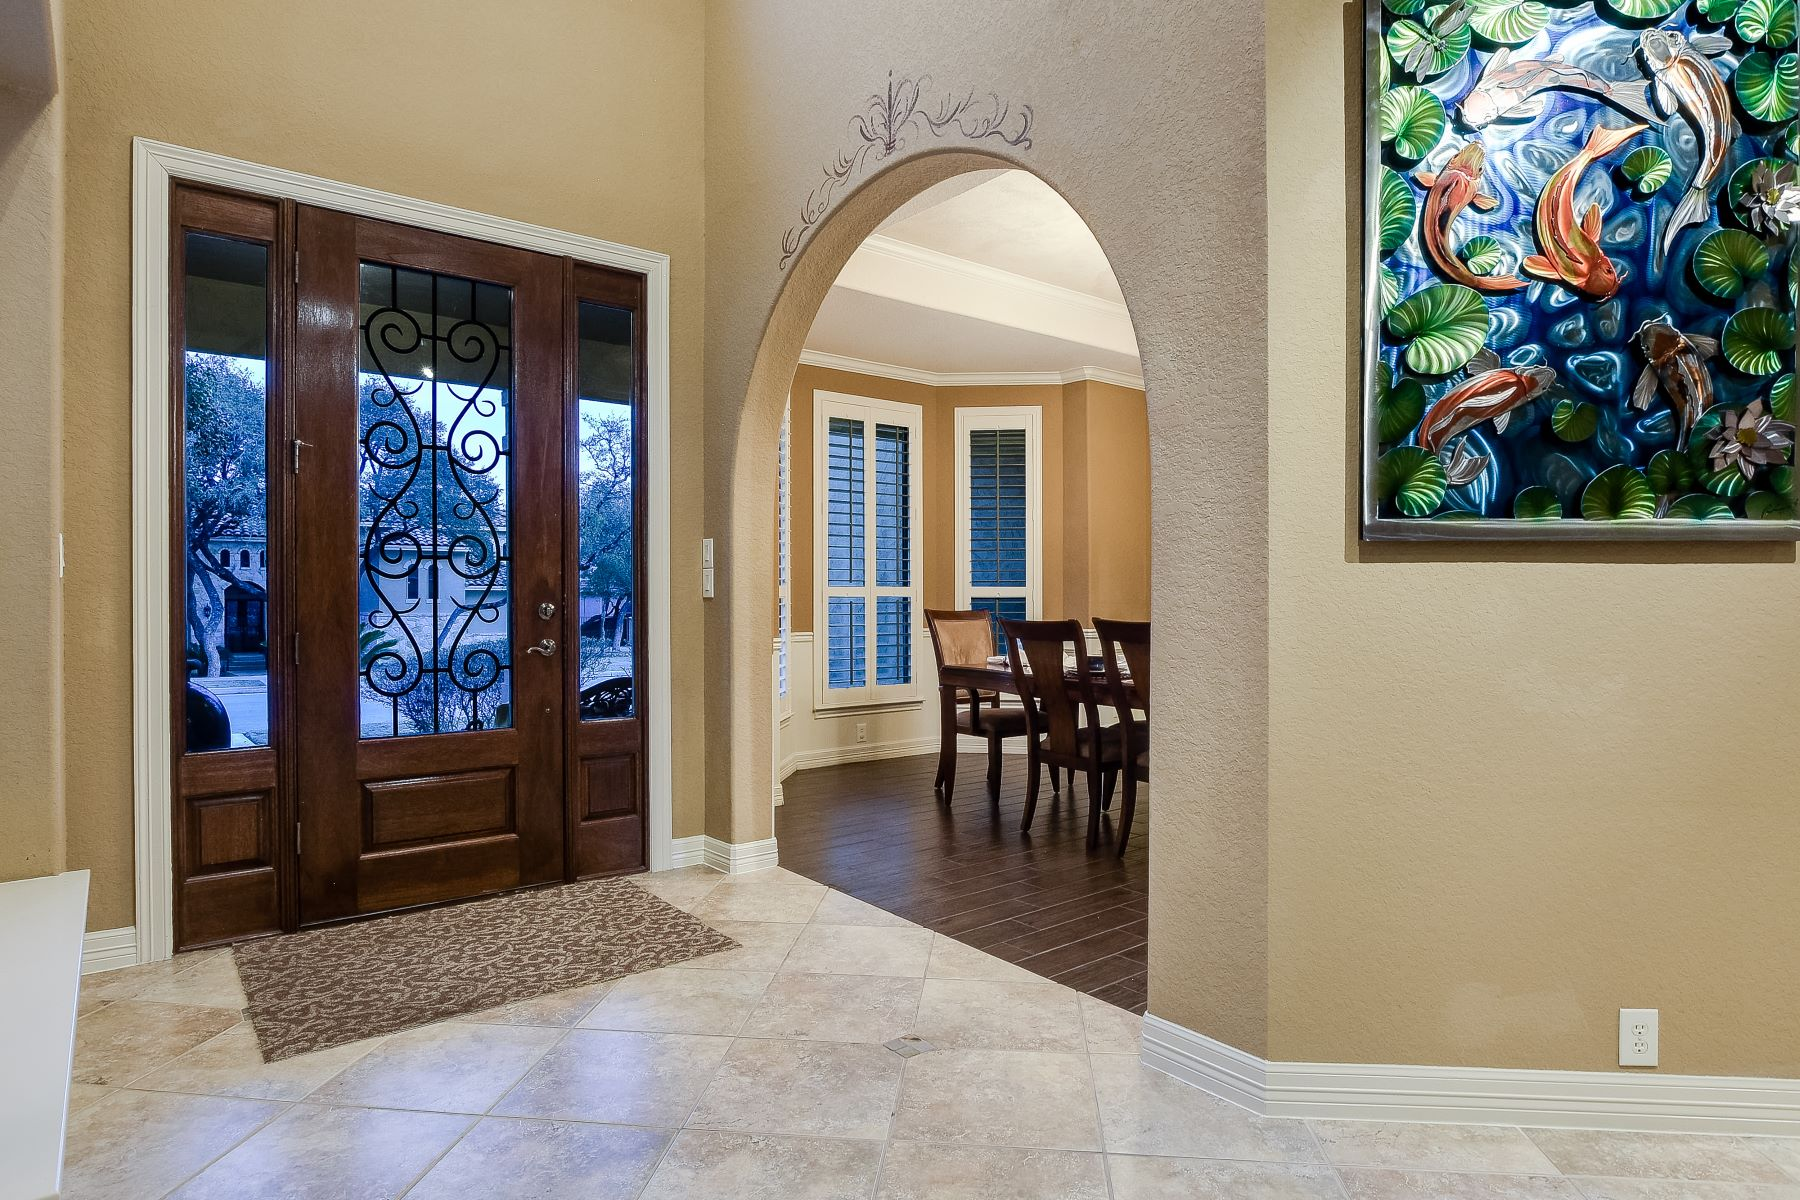 Additional photo for property listing at Spacious Estate in Canyon Springs 25114 Fairway Springs San Antonio, Texas 78260 United States